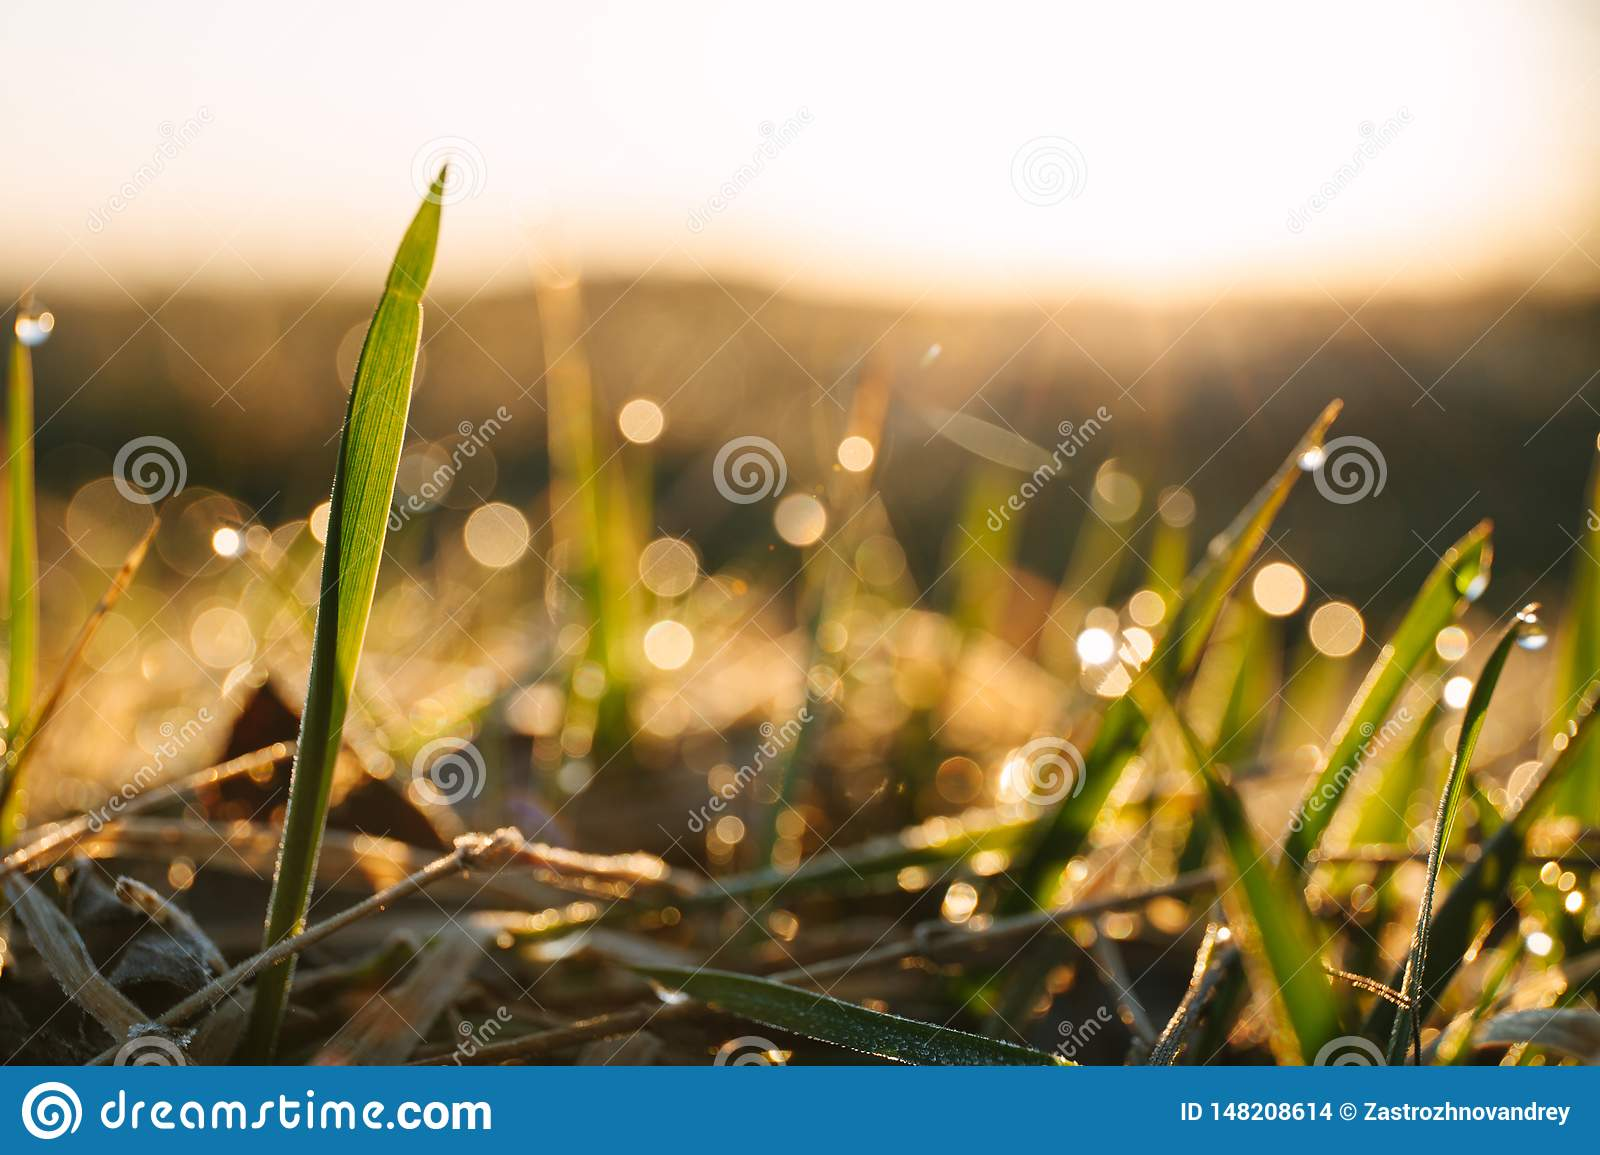 Dew drops on blades of fresh grass, morning rays of sun. Copy space for text